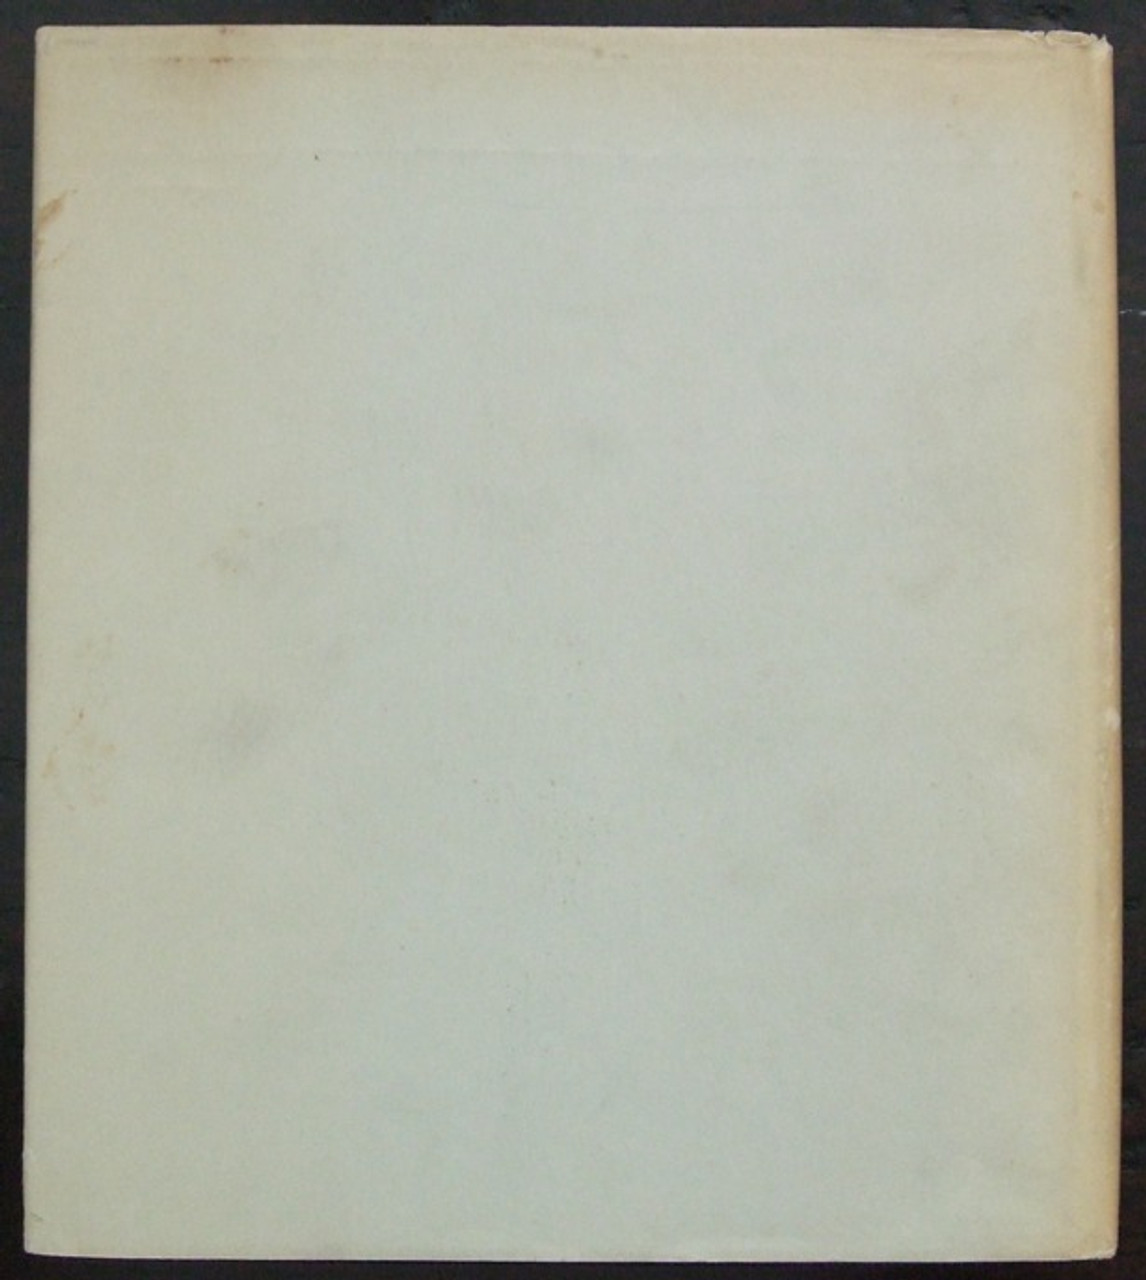 American Photographs by Walker Evans, First Edition with Dust Jacket